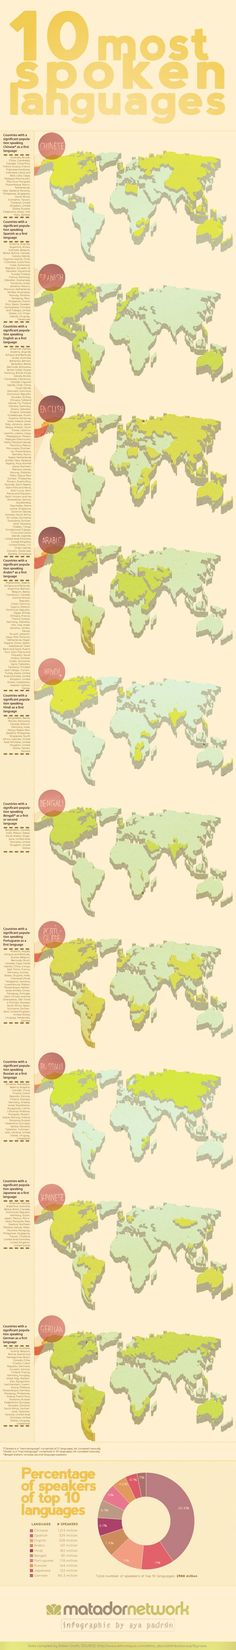 Educational infographic : Where are the worlds most common languages spoken? [Infographic]